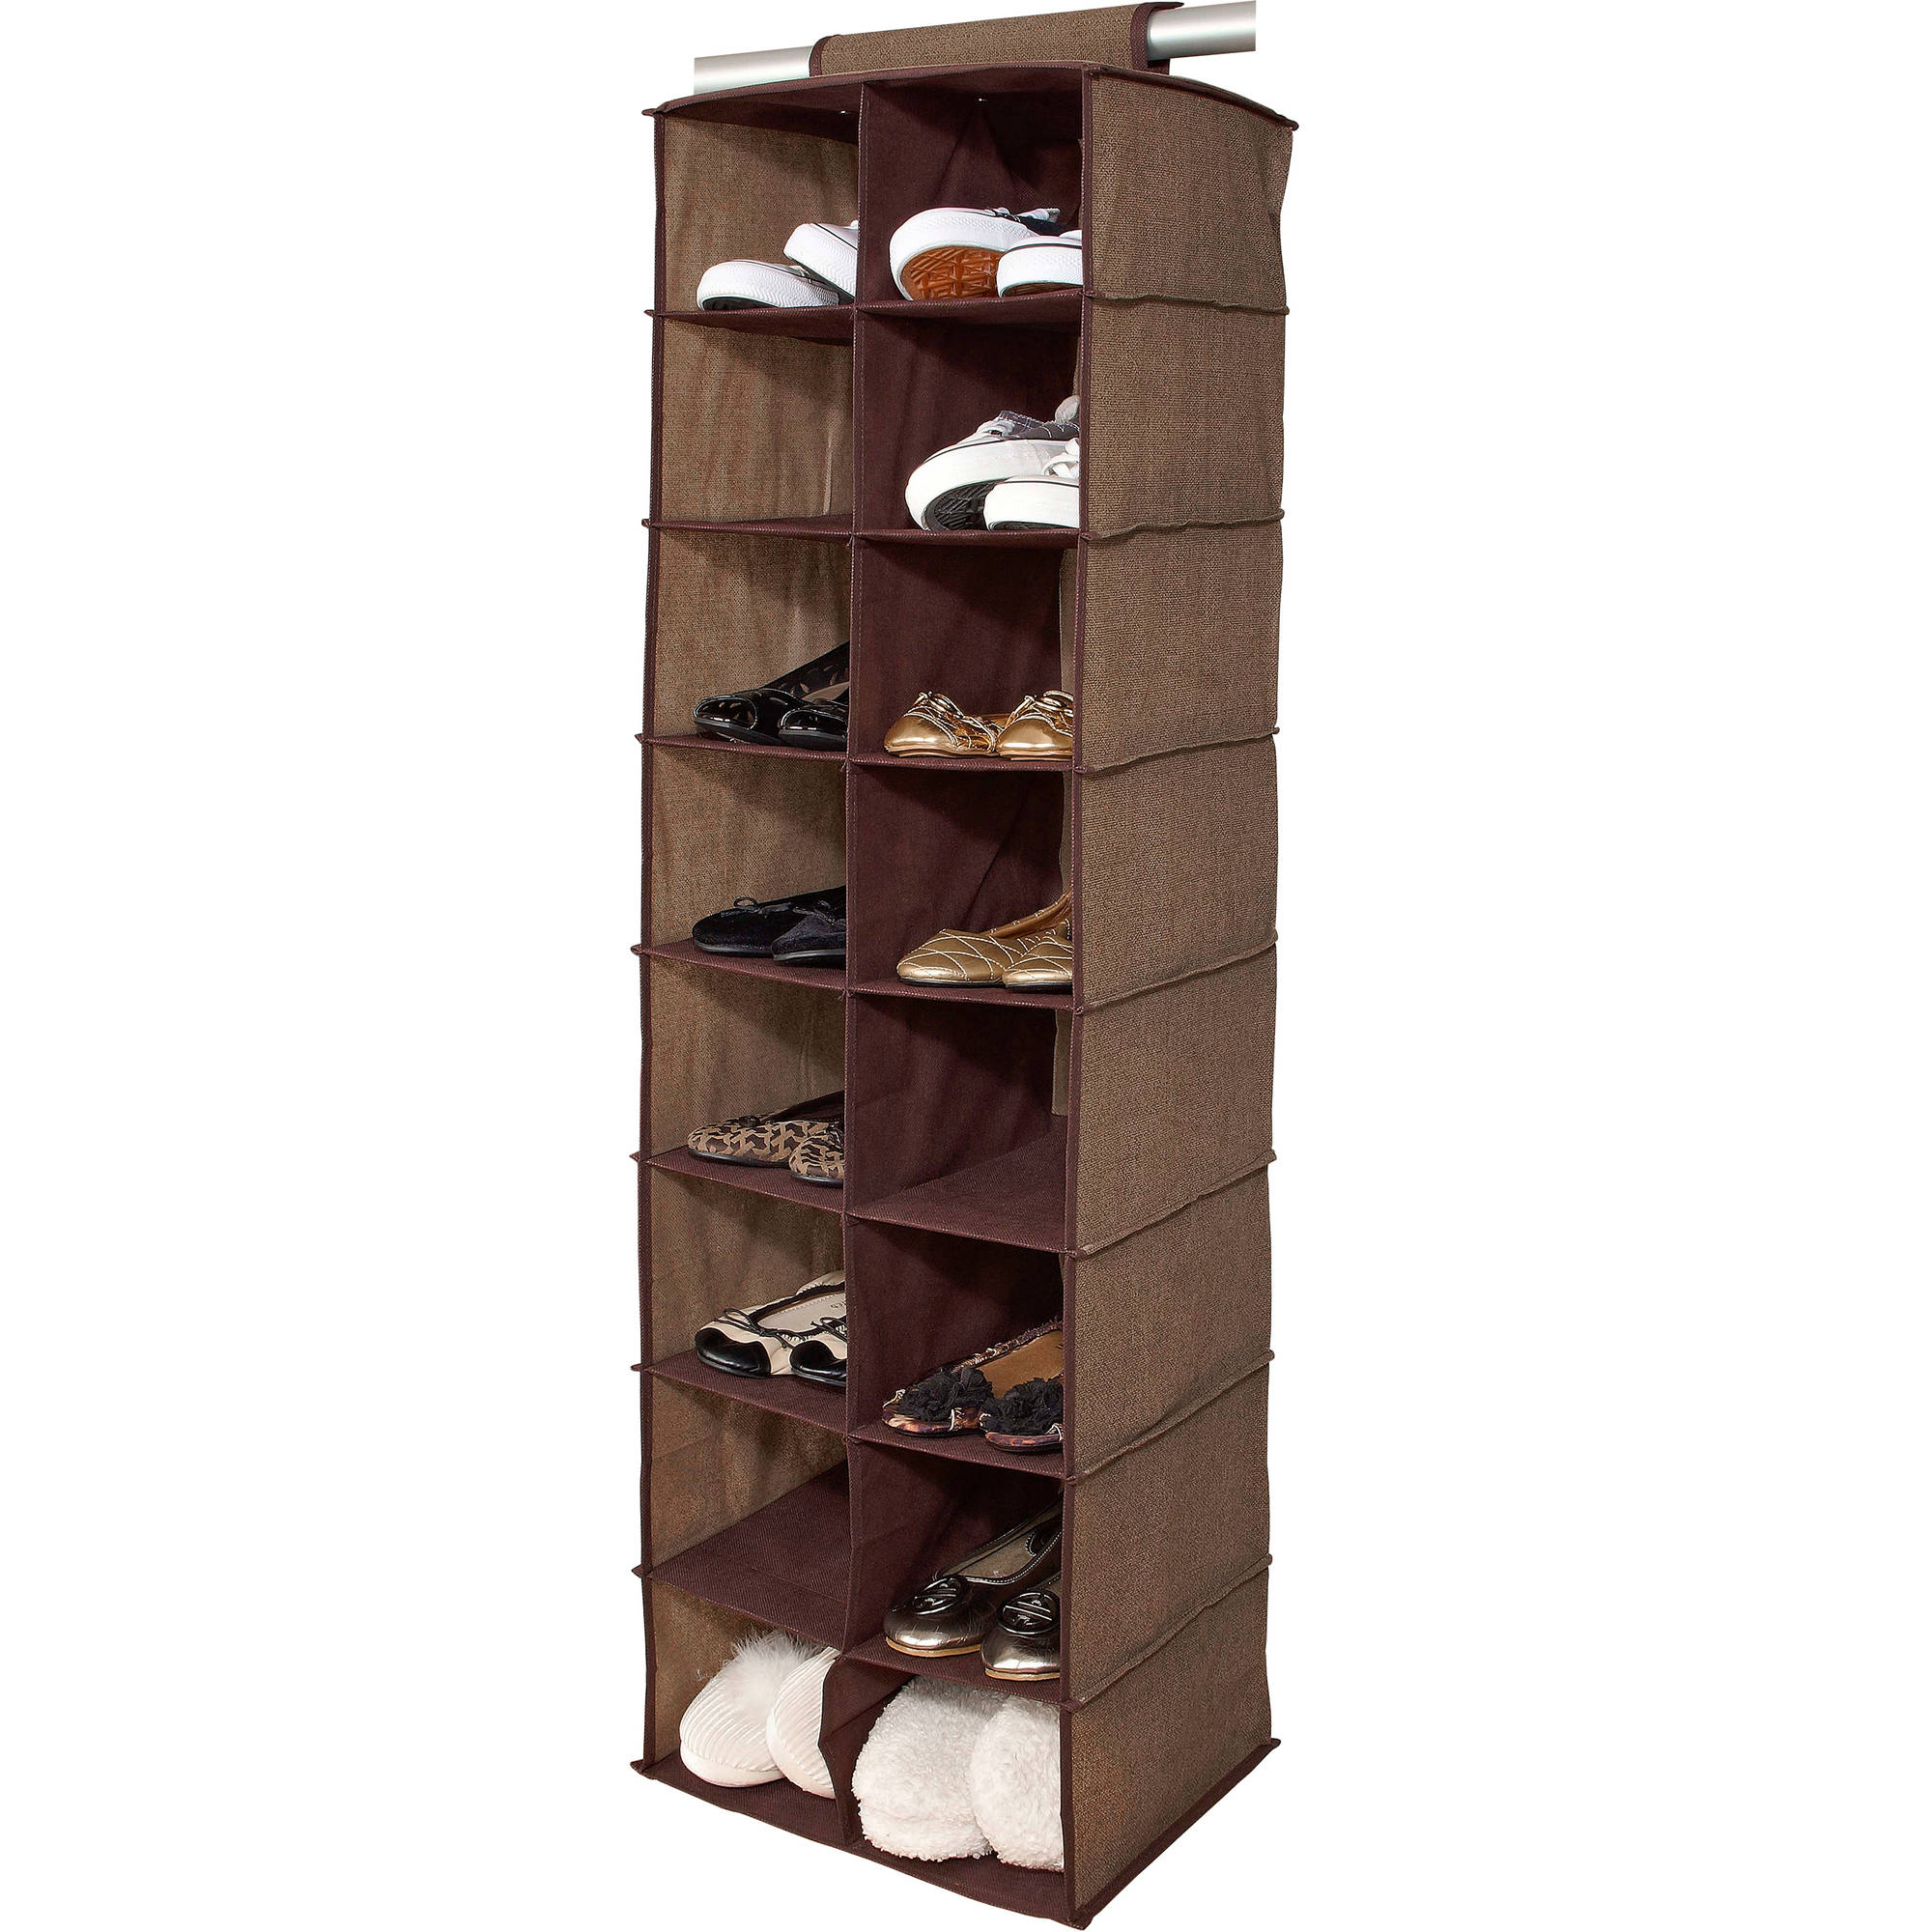 Simplify 16-Pocket Shoe Organizer, Multiple Colors